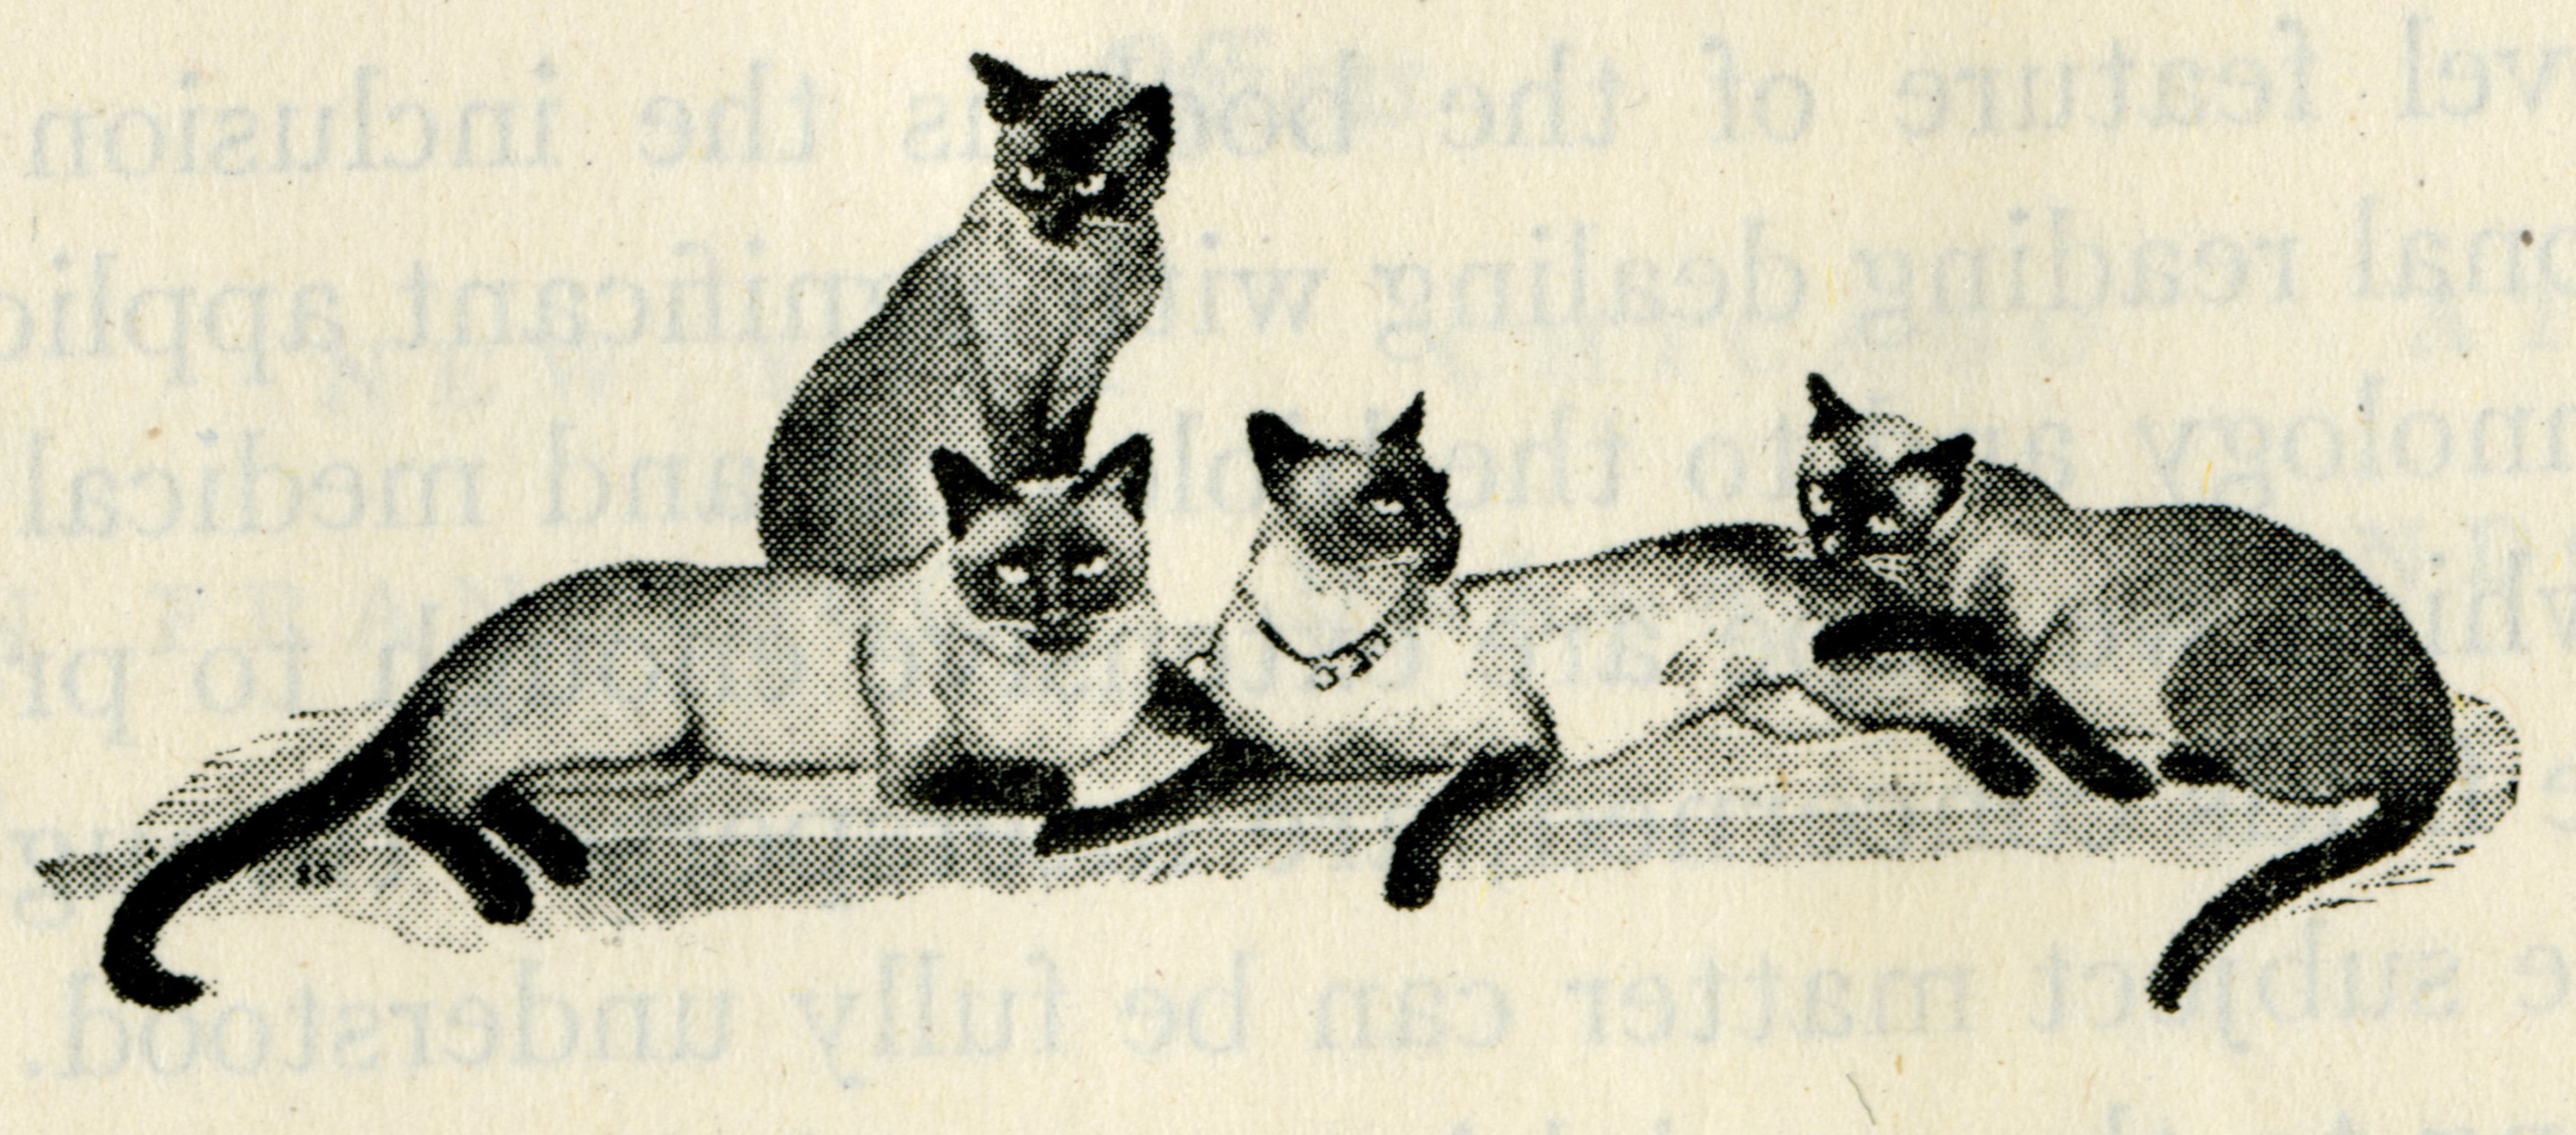 One of the many whimsical illustrations of the Fieser's cats that were included in their textbooks.